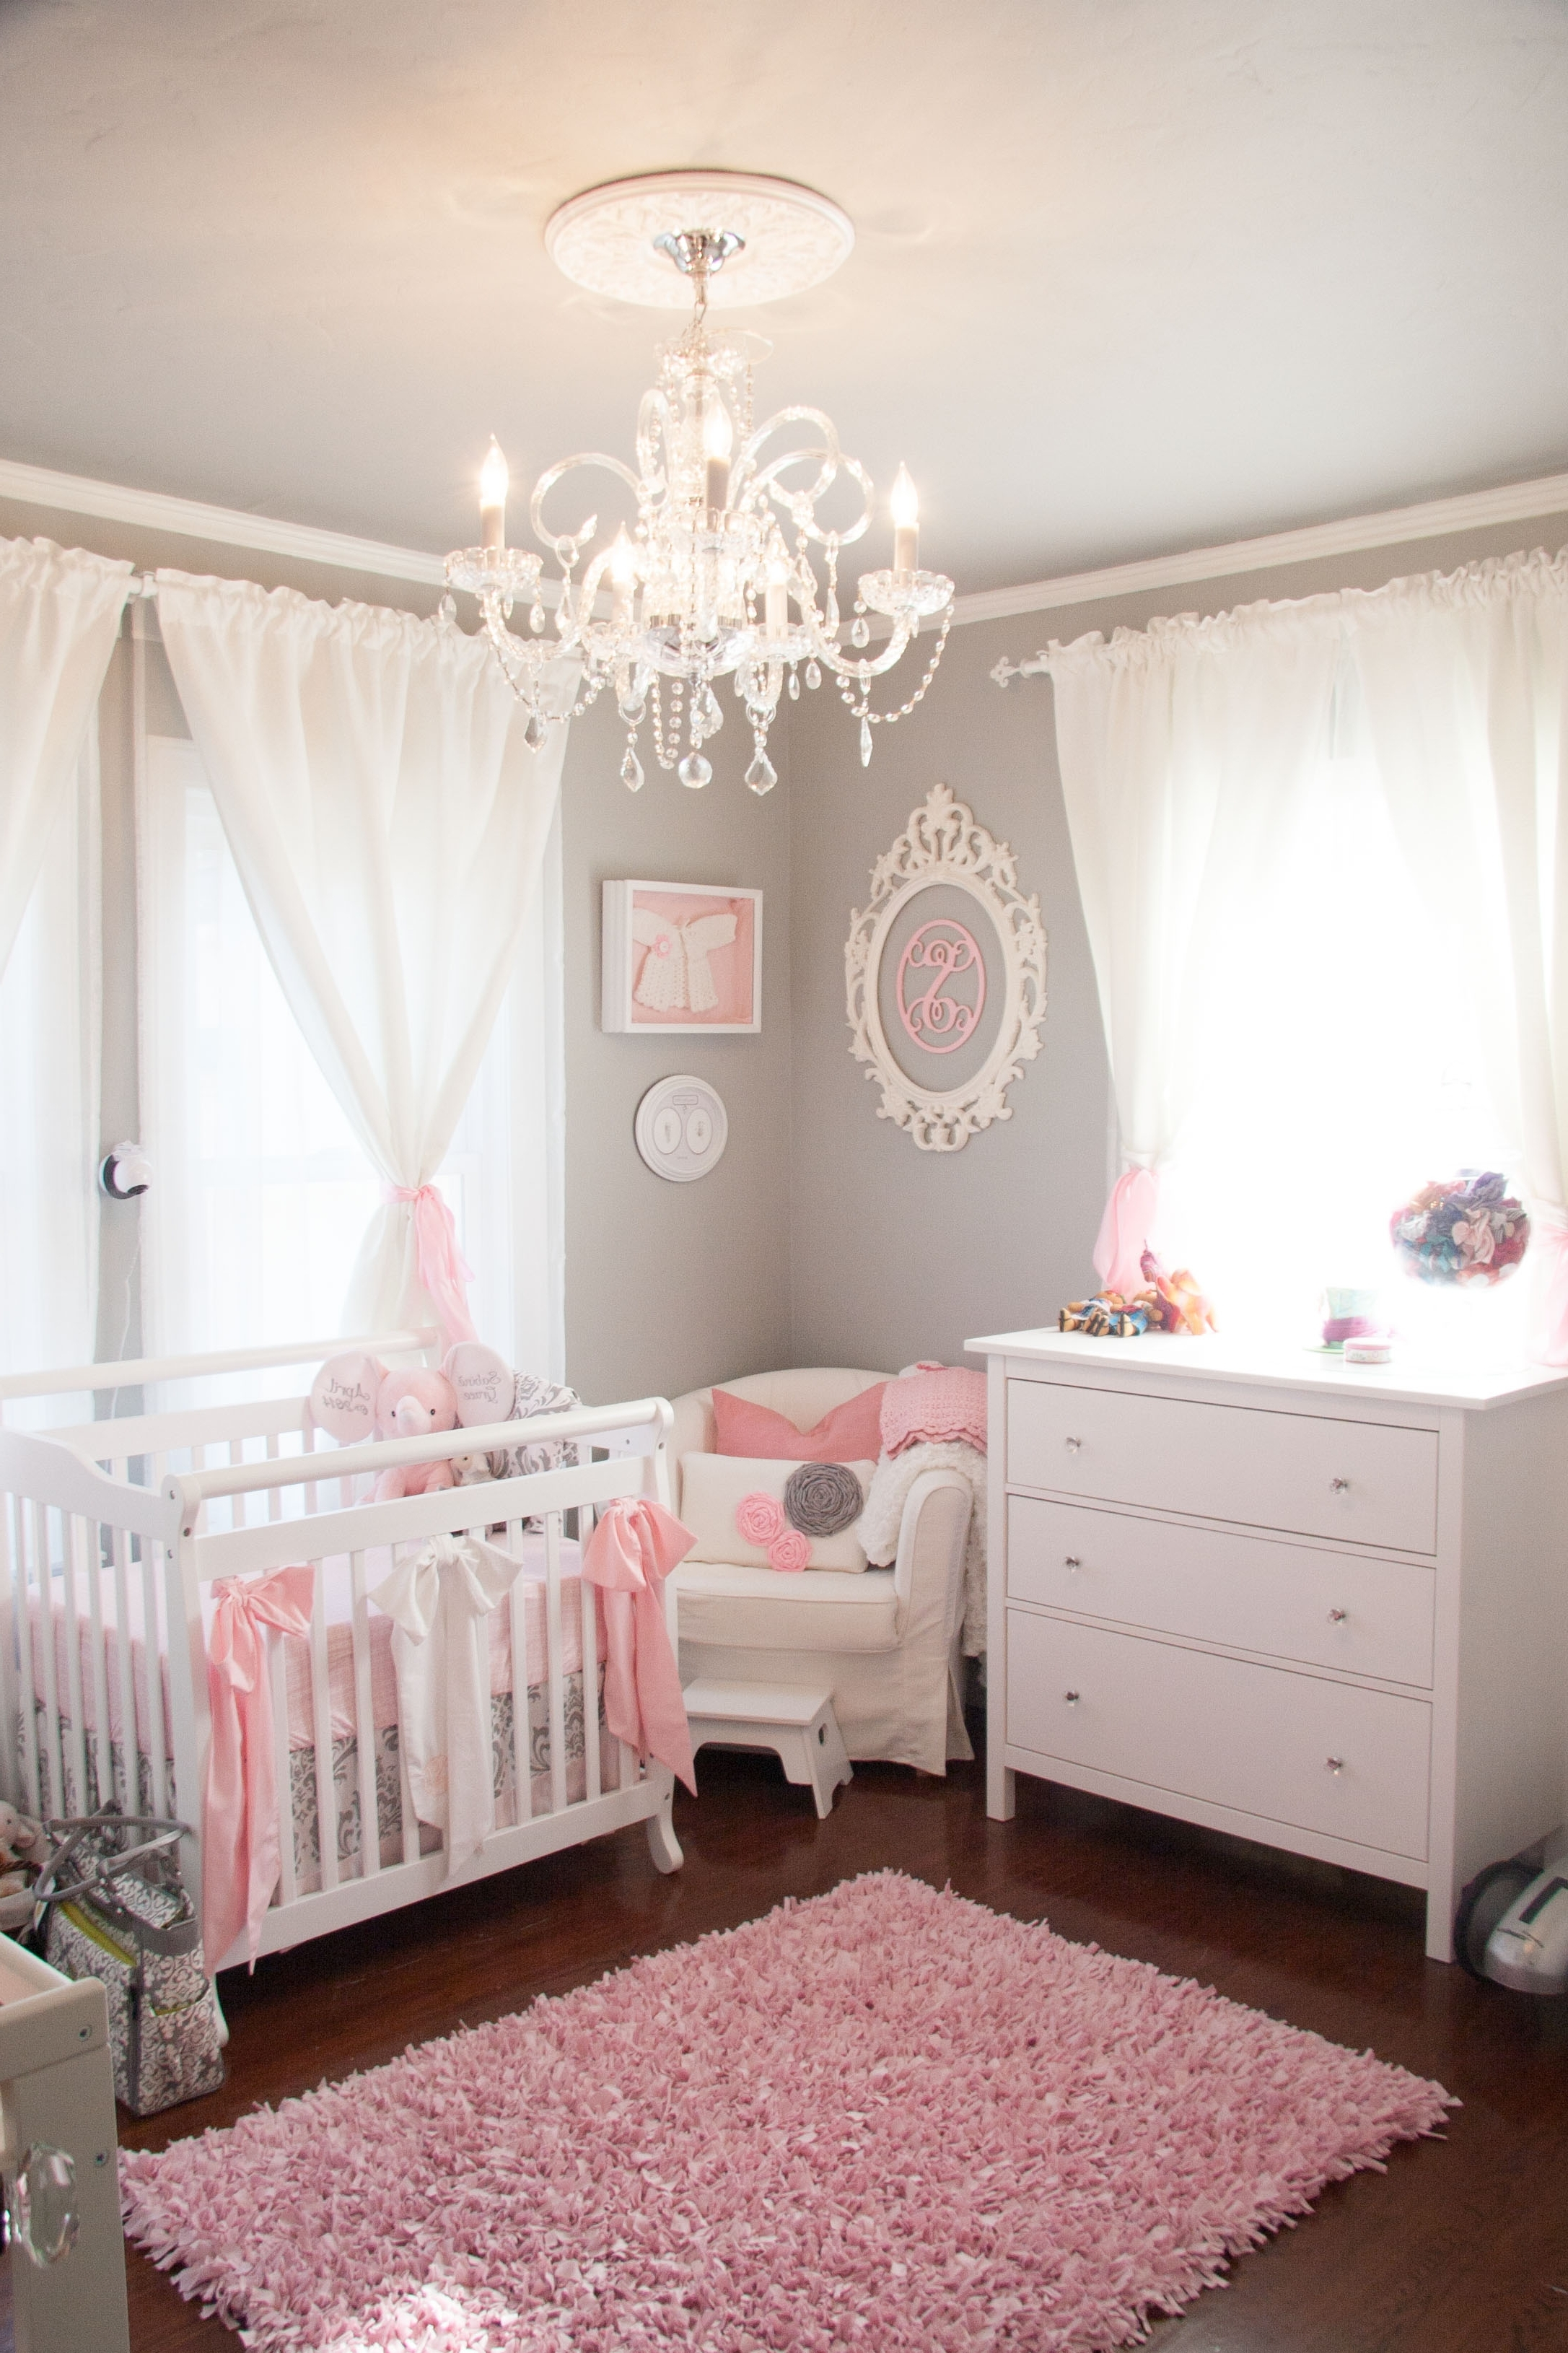 Chandeliers For Baby Girl Room With Regard To Most Current Tiny Budget In A Tiny Room For A Tiny Princess – Project Nursery (View 13 of 20)